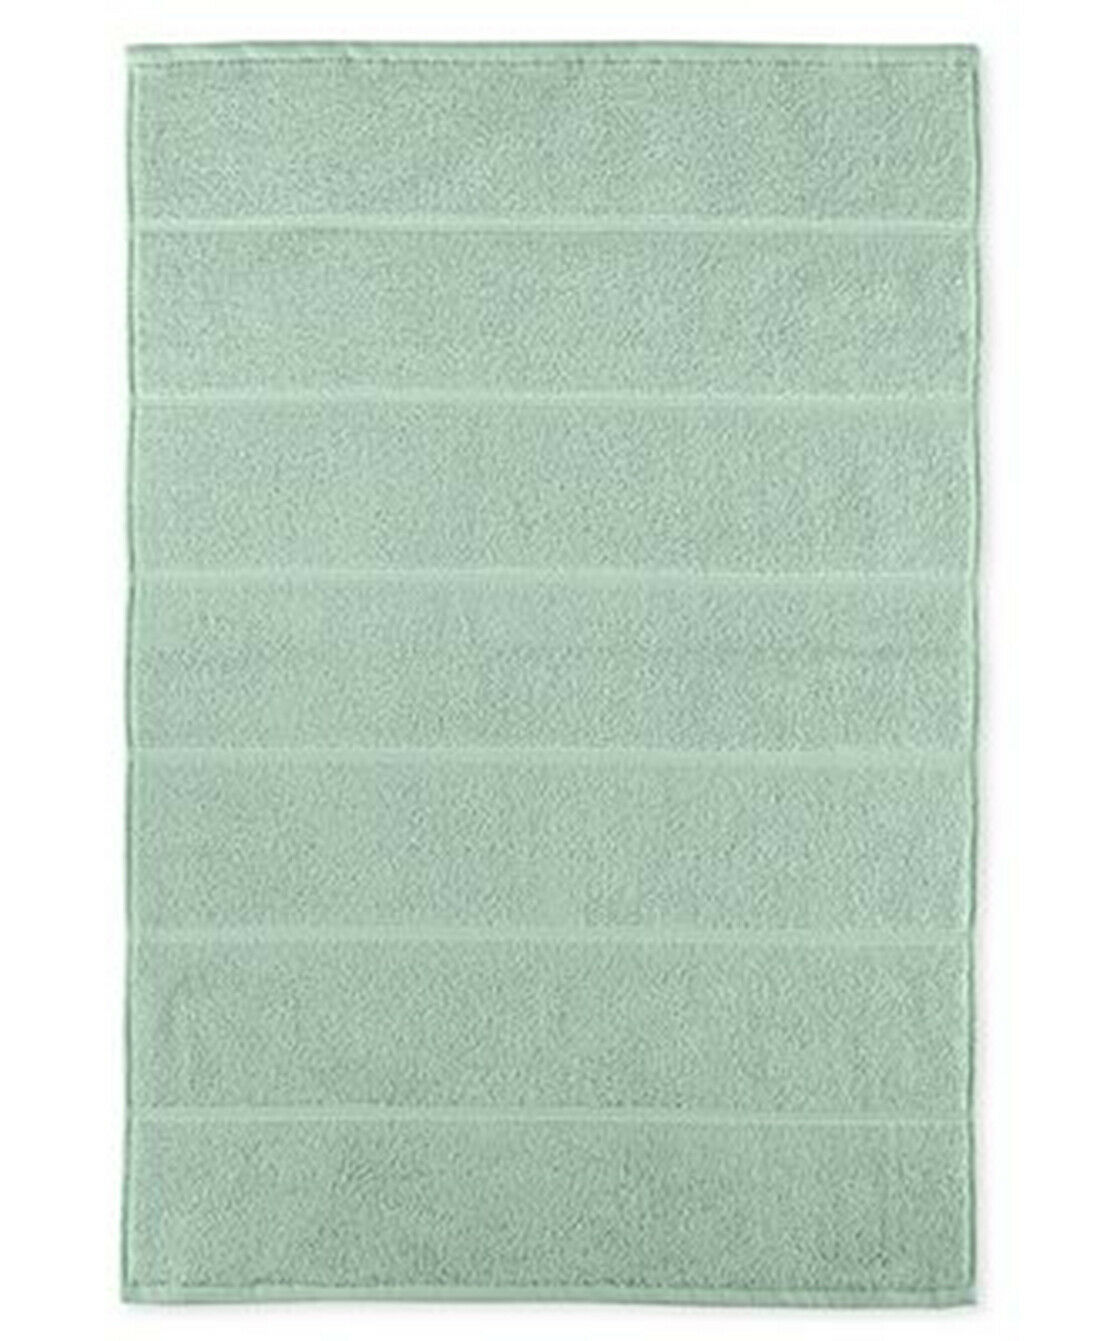 "Hotel Collection Micro Cotton Luxe 24"" x 34"" Tub Mat, Mint"